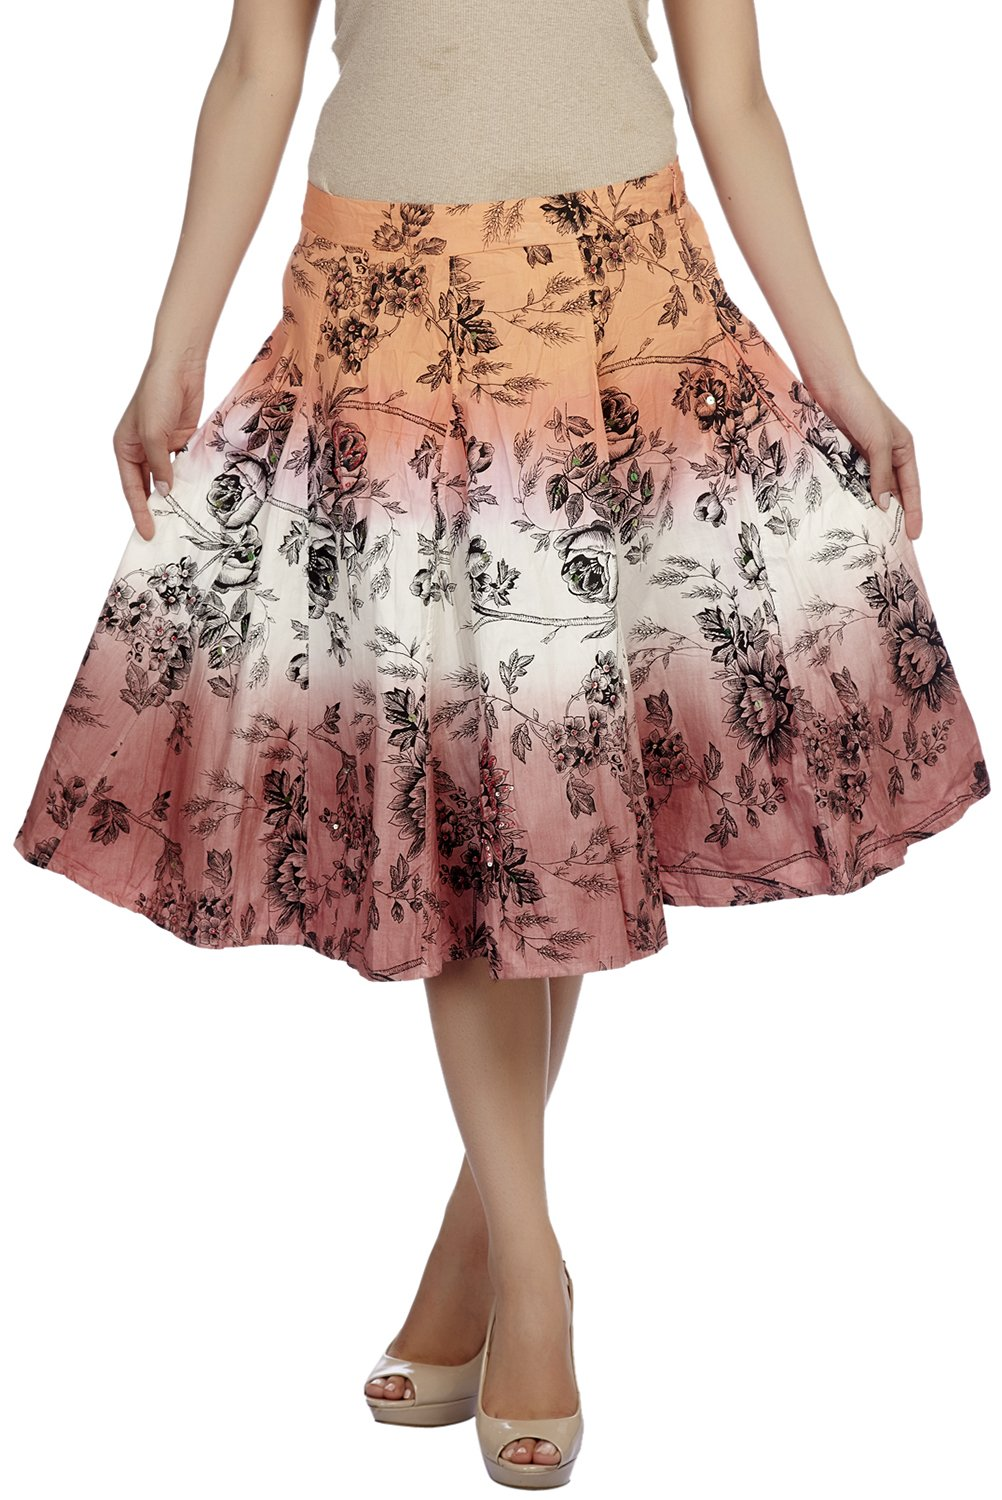 Cappadocia Women's Cotton Skirt